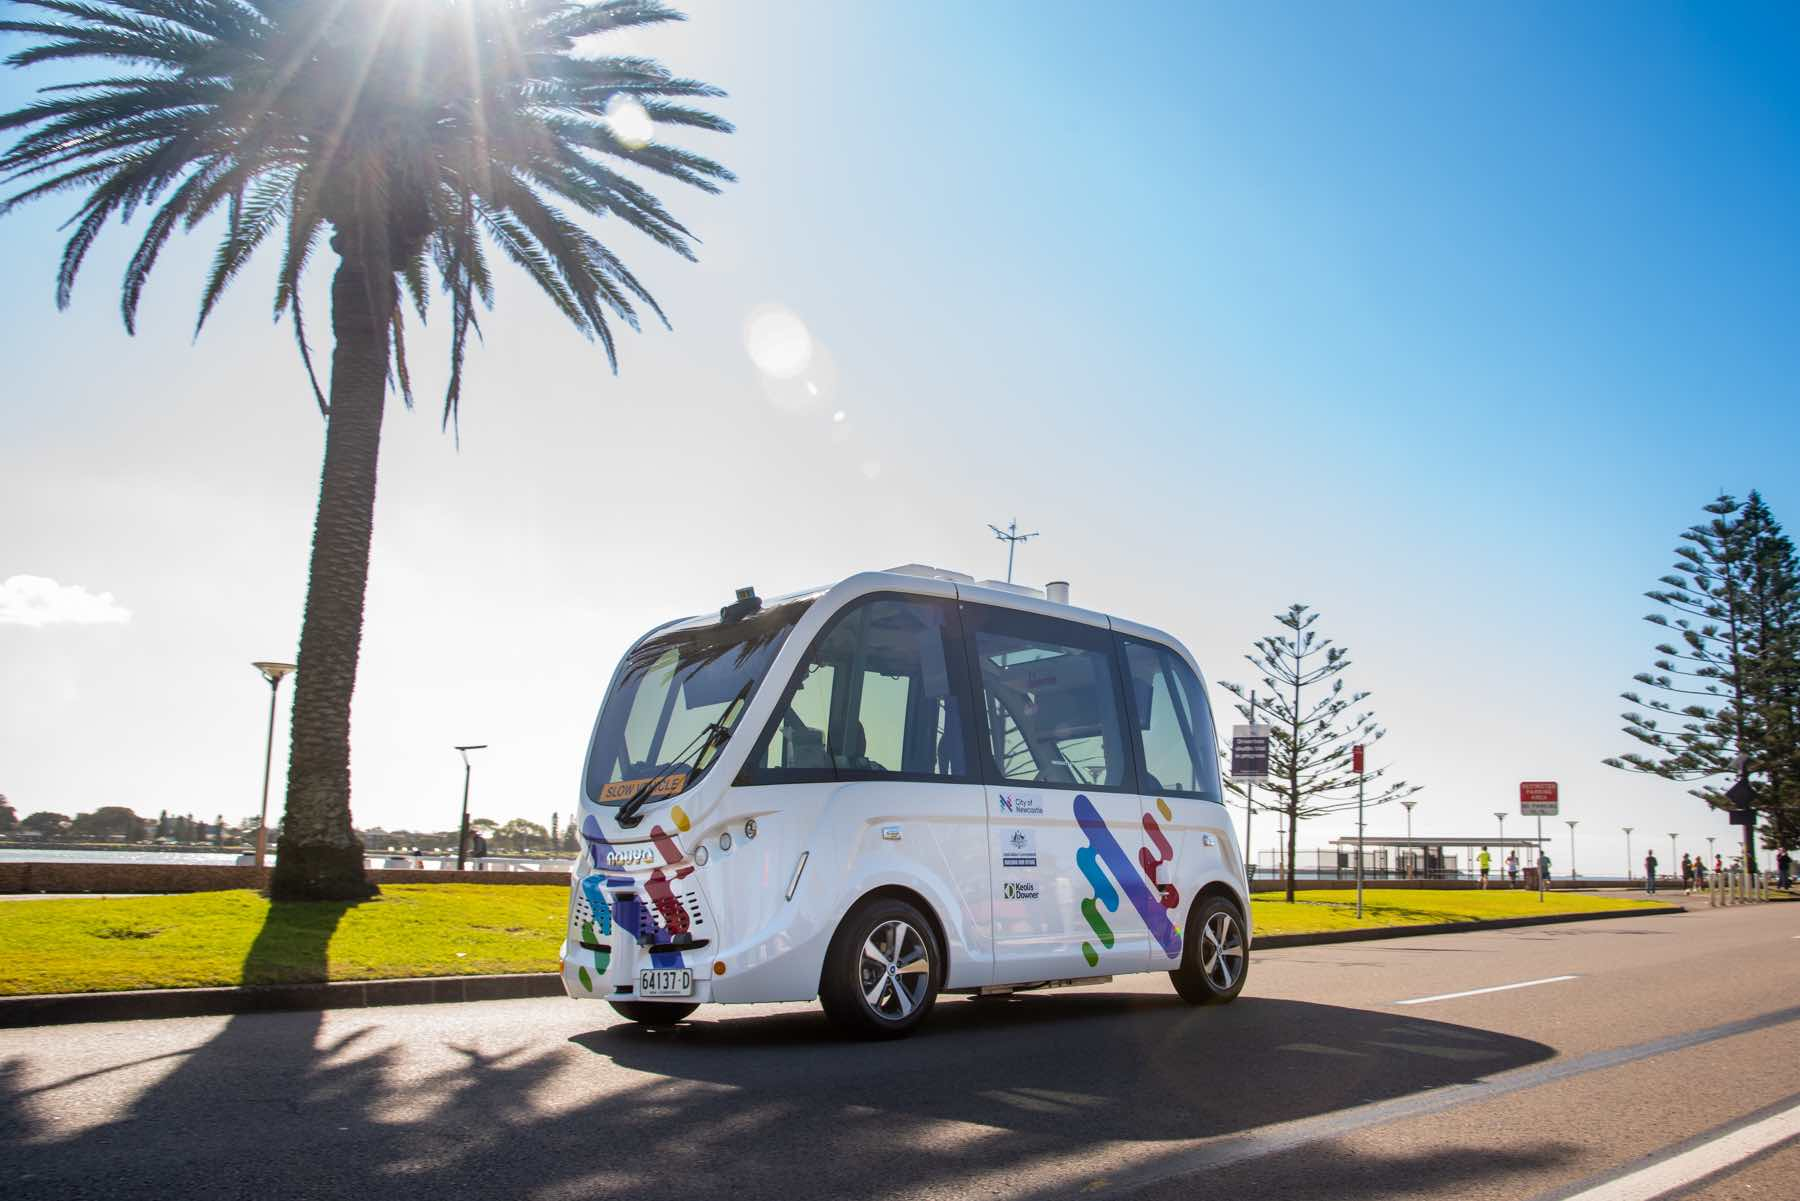 Keolis Downer driverless shuttle navya